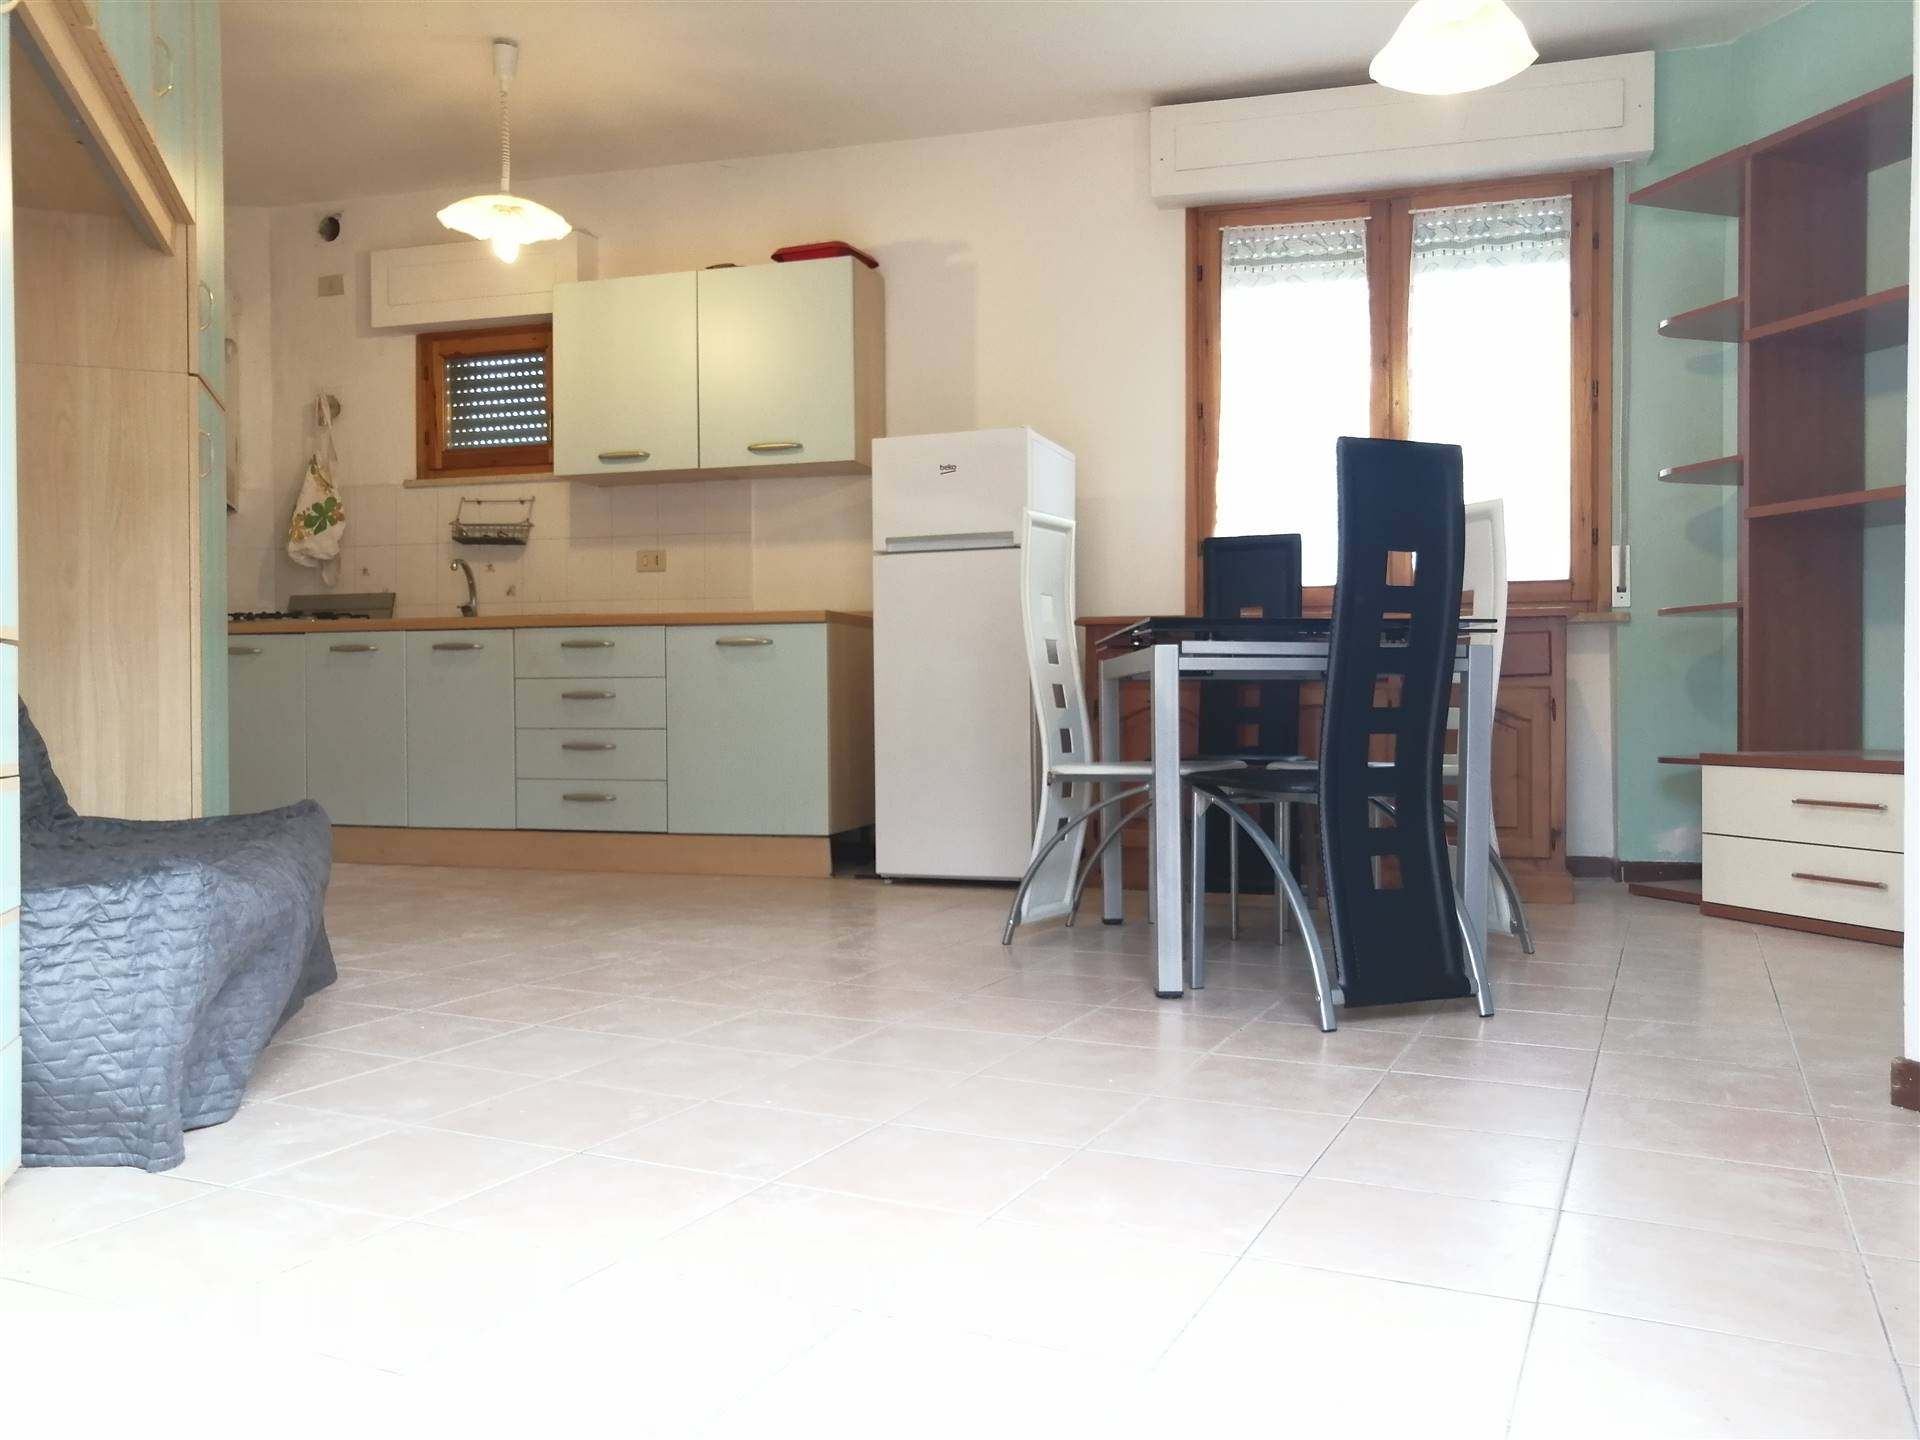 ORATOIO, PISA, Apartment for rent of 30 Sq. mt., Excellent Condition, Heating Individual heating system, Energetic class: G, Epi: 2 kwh/m2 year,